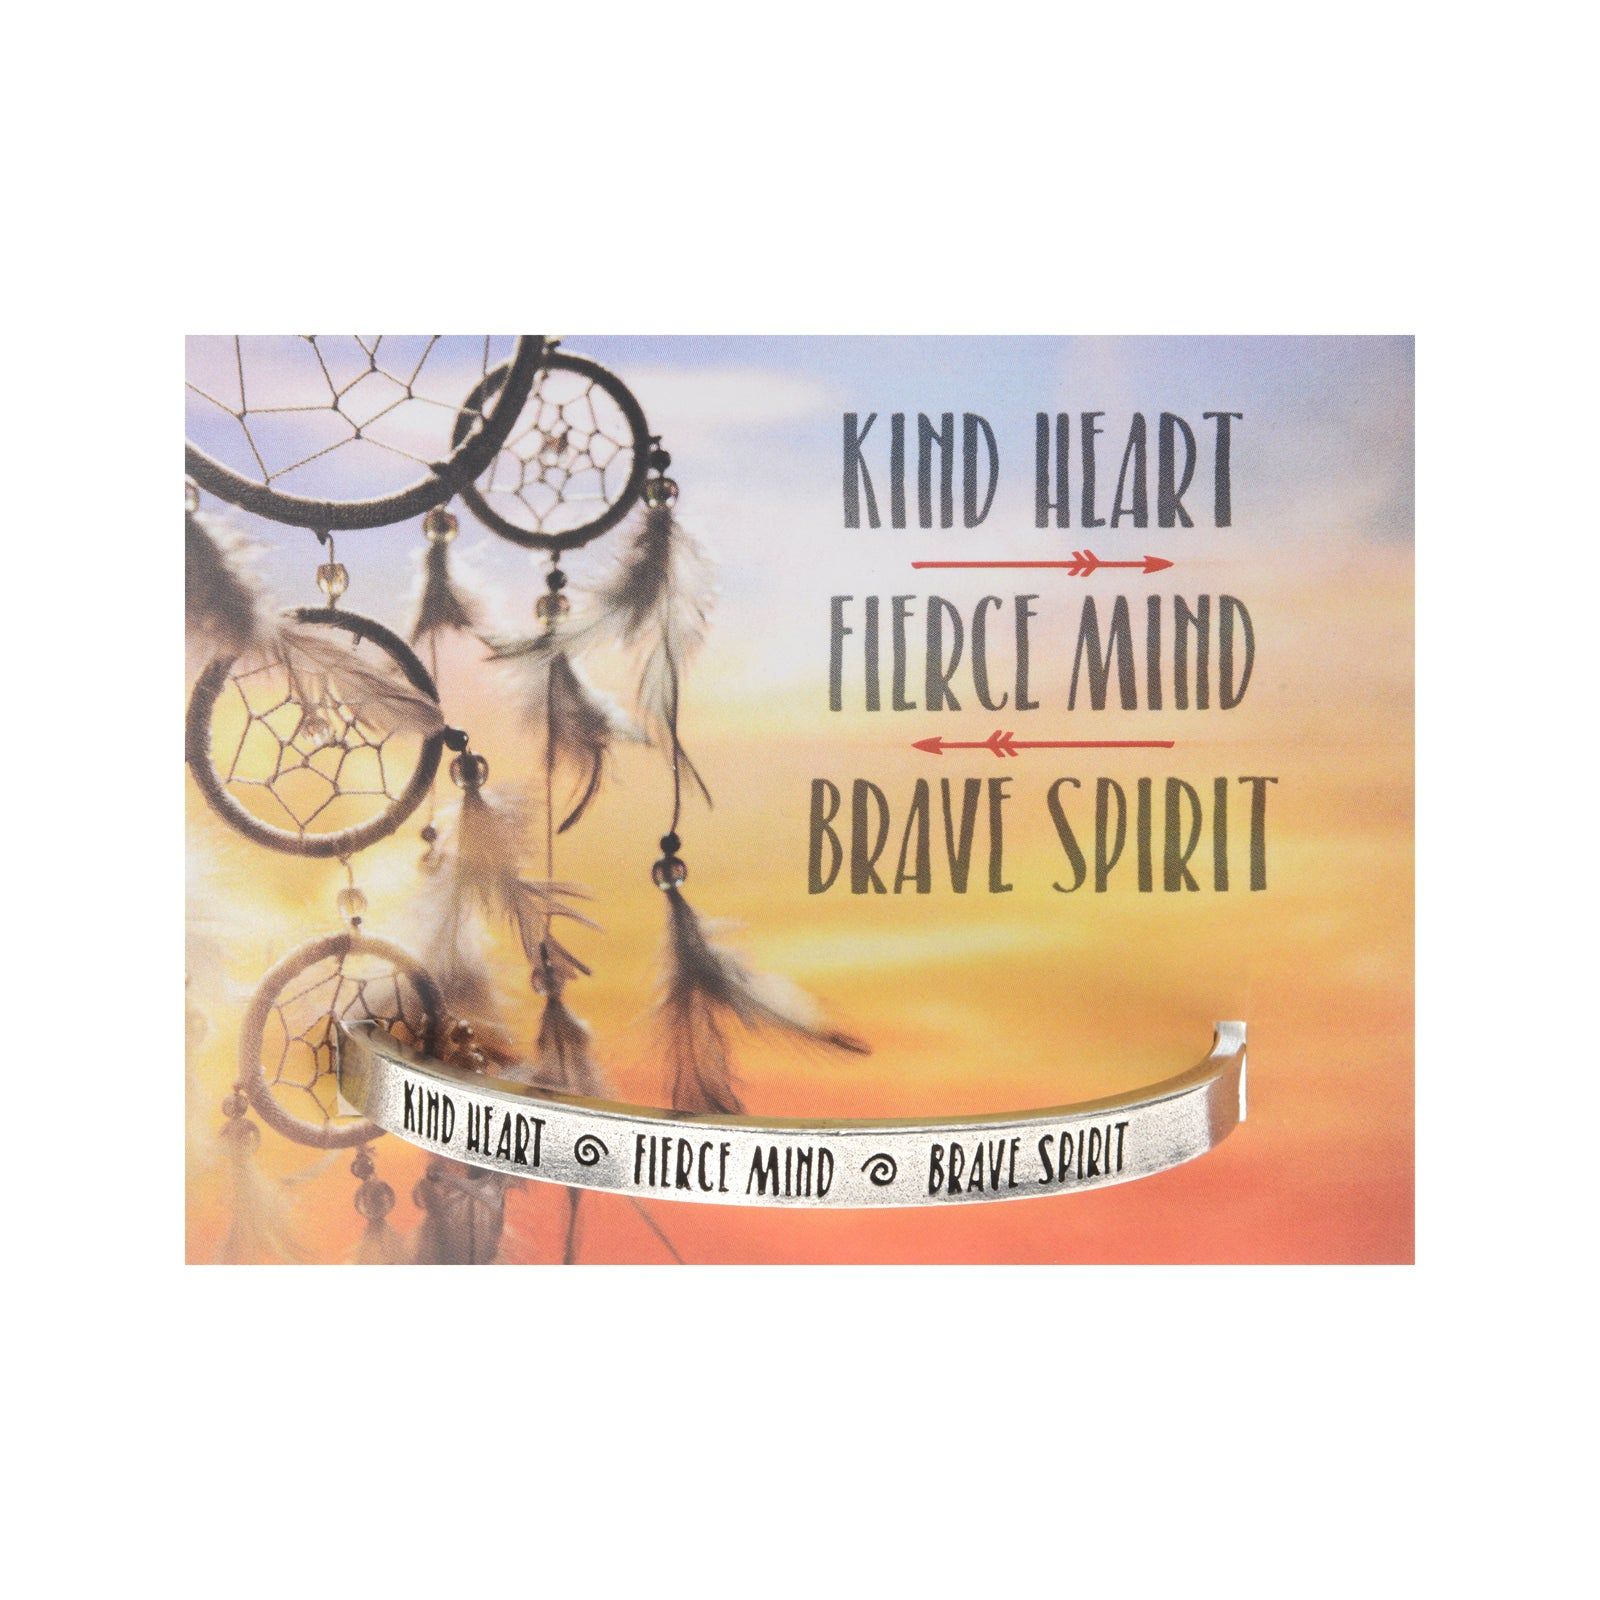 Kind Heart, Fierce Mind, Brave Spirit Quotable Cuff - Whitney Howard Designs